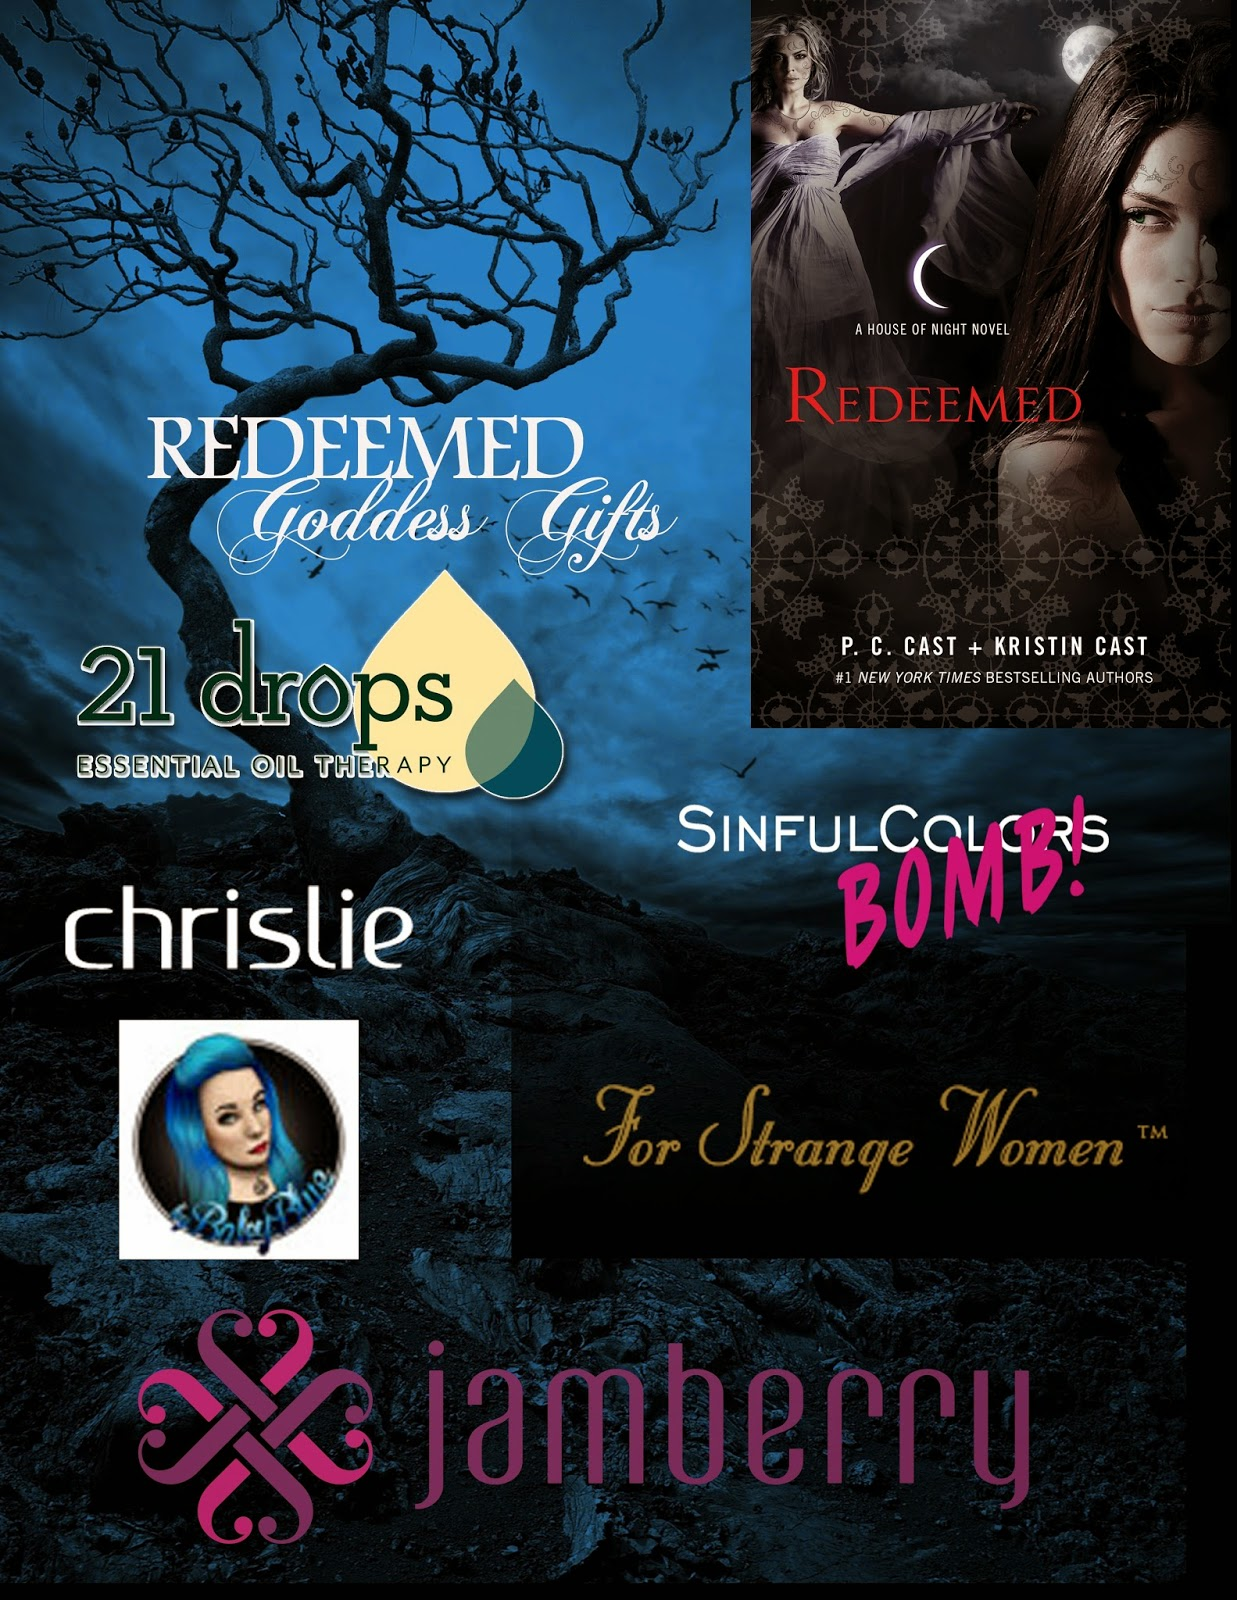 http://www.stuckinbooks.com/2014/10/redeemed-celebration-giveaway.html